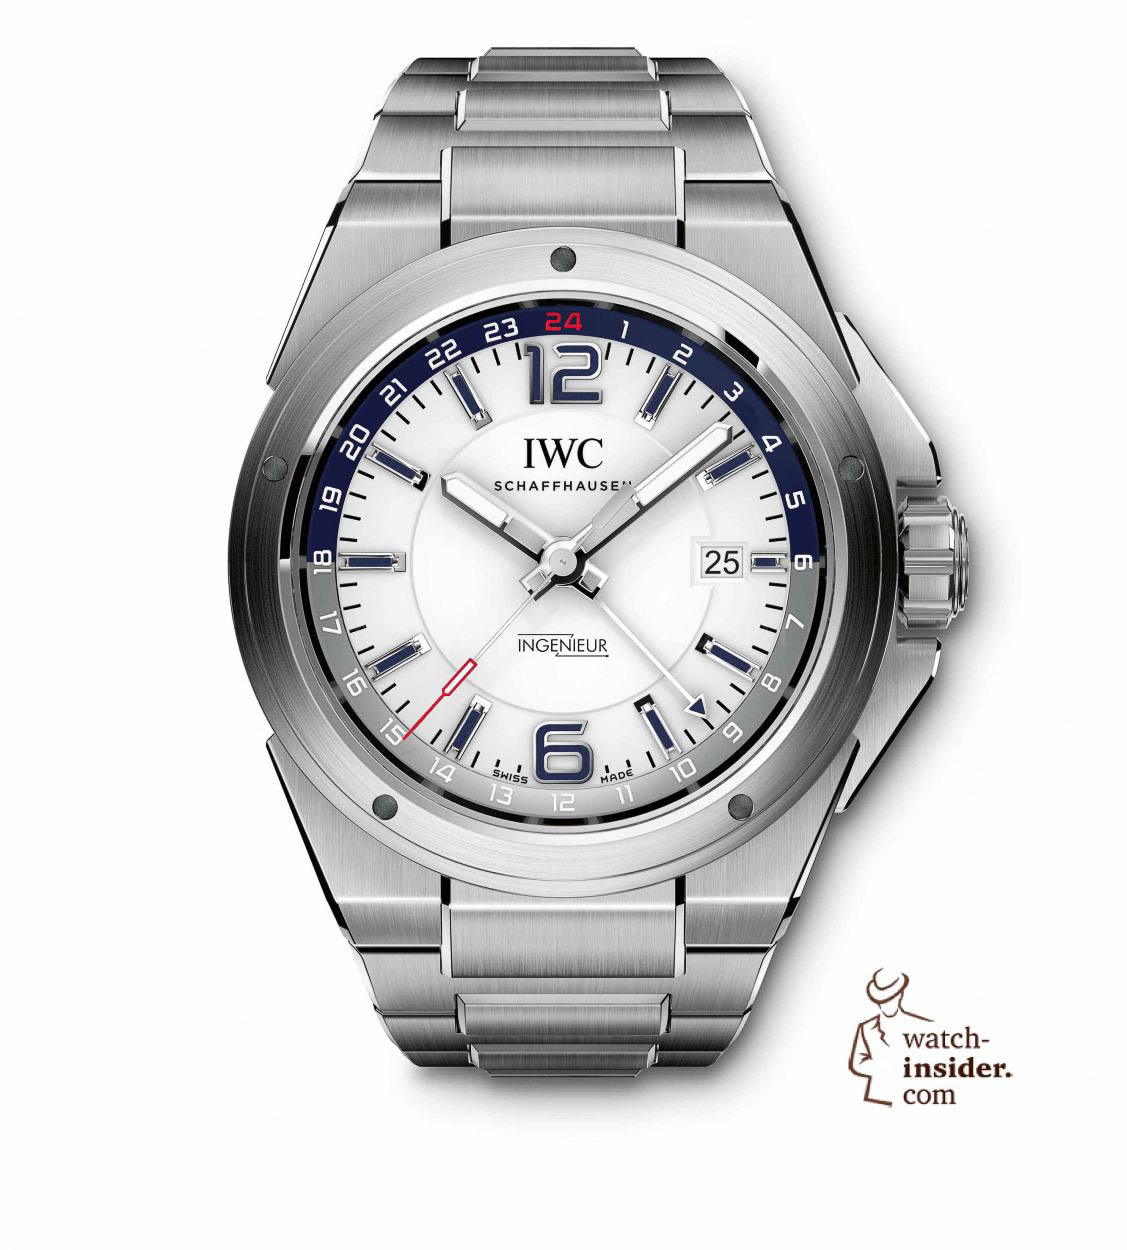 ec5a0a6b474 IWC Ingenieur Dual Time. Discover the new Ingenieur Automatic Carbon  Performance ...